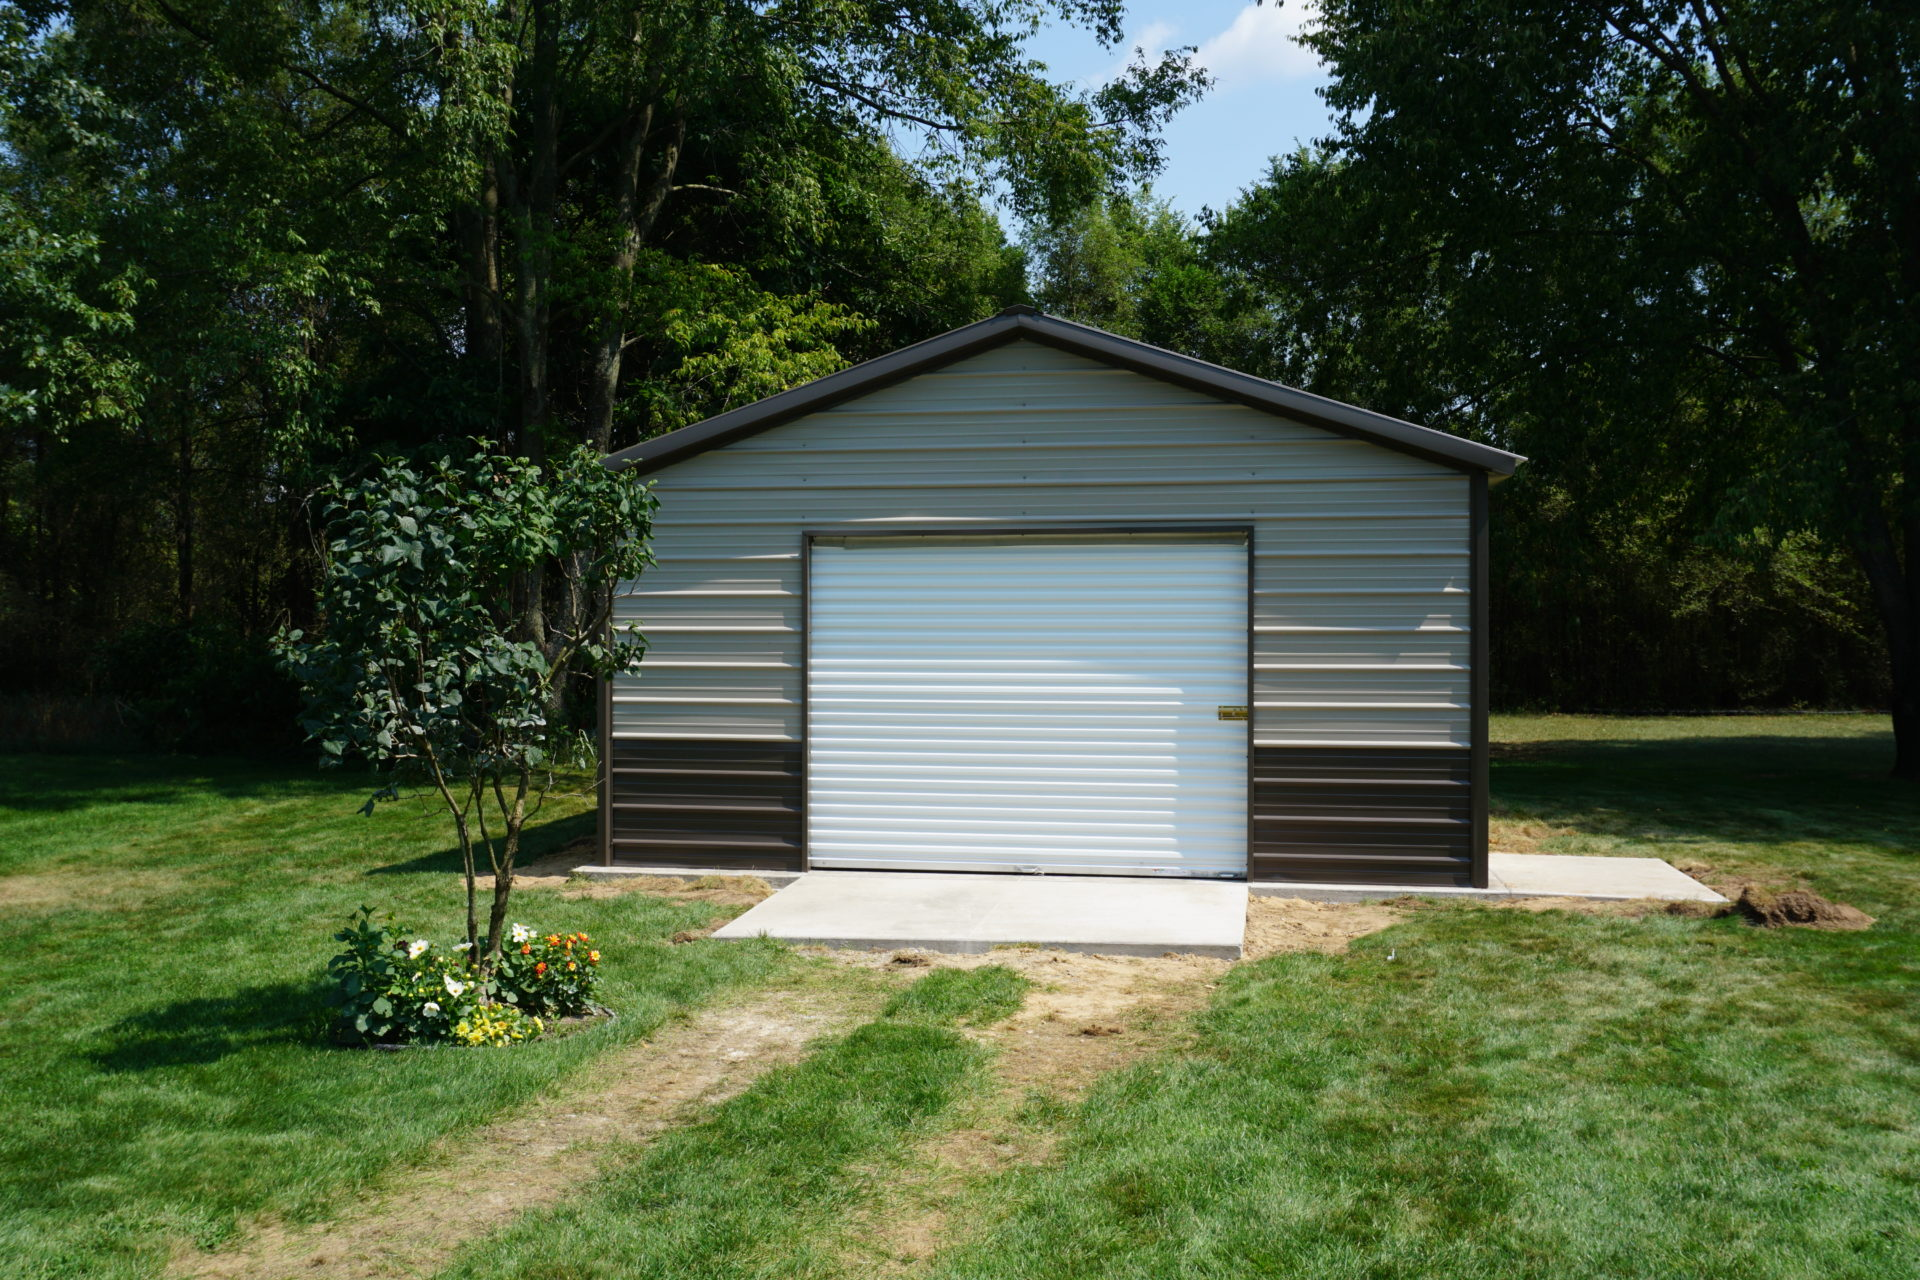 18x20x8 Steel Shed in Fairview, WI